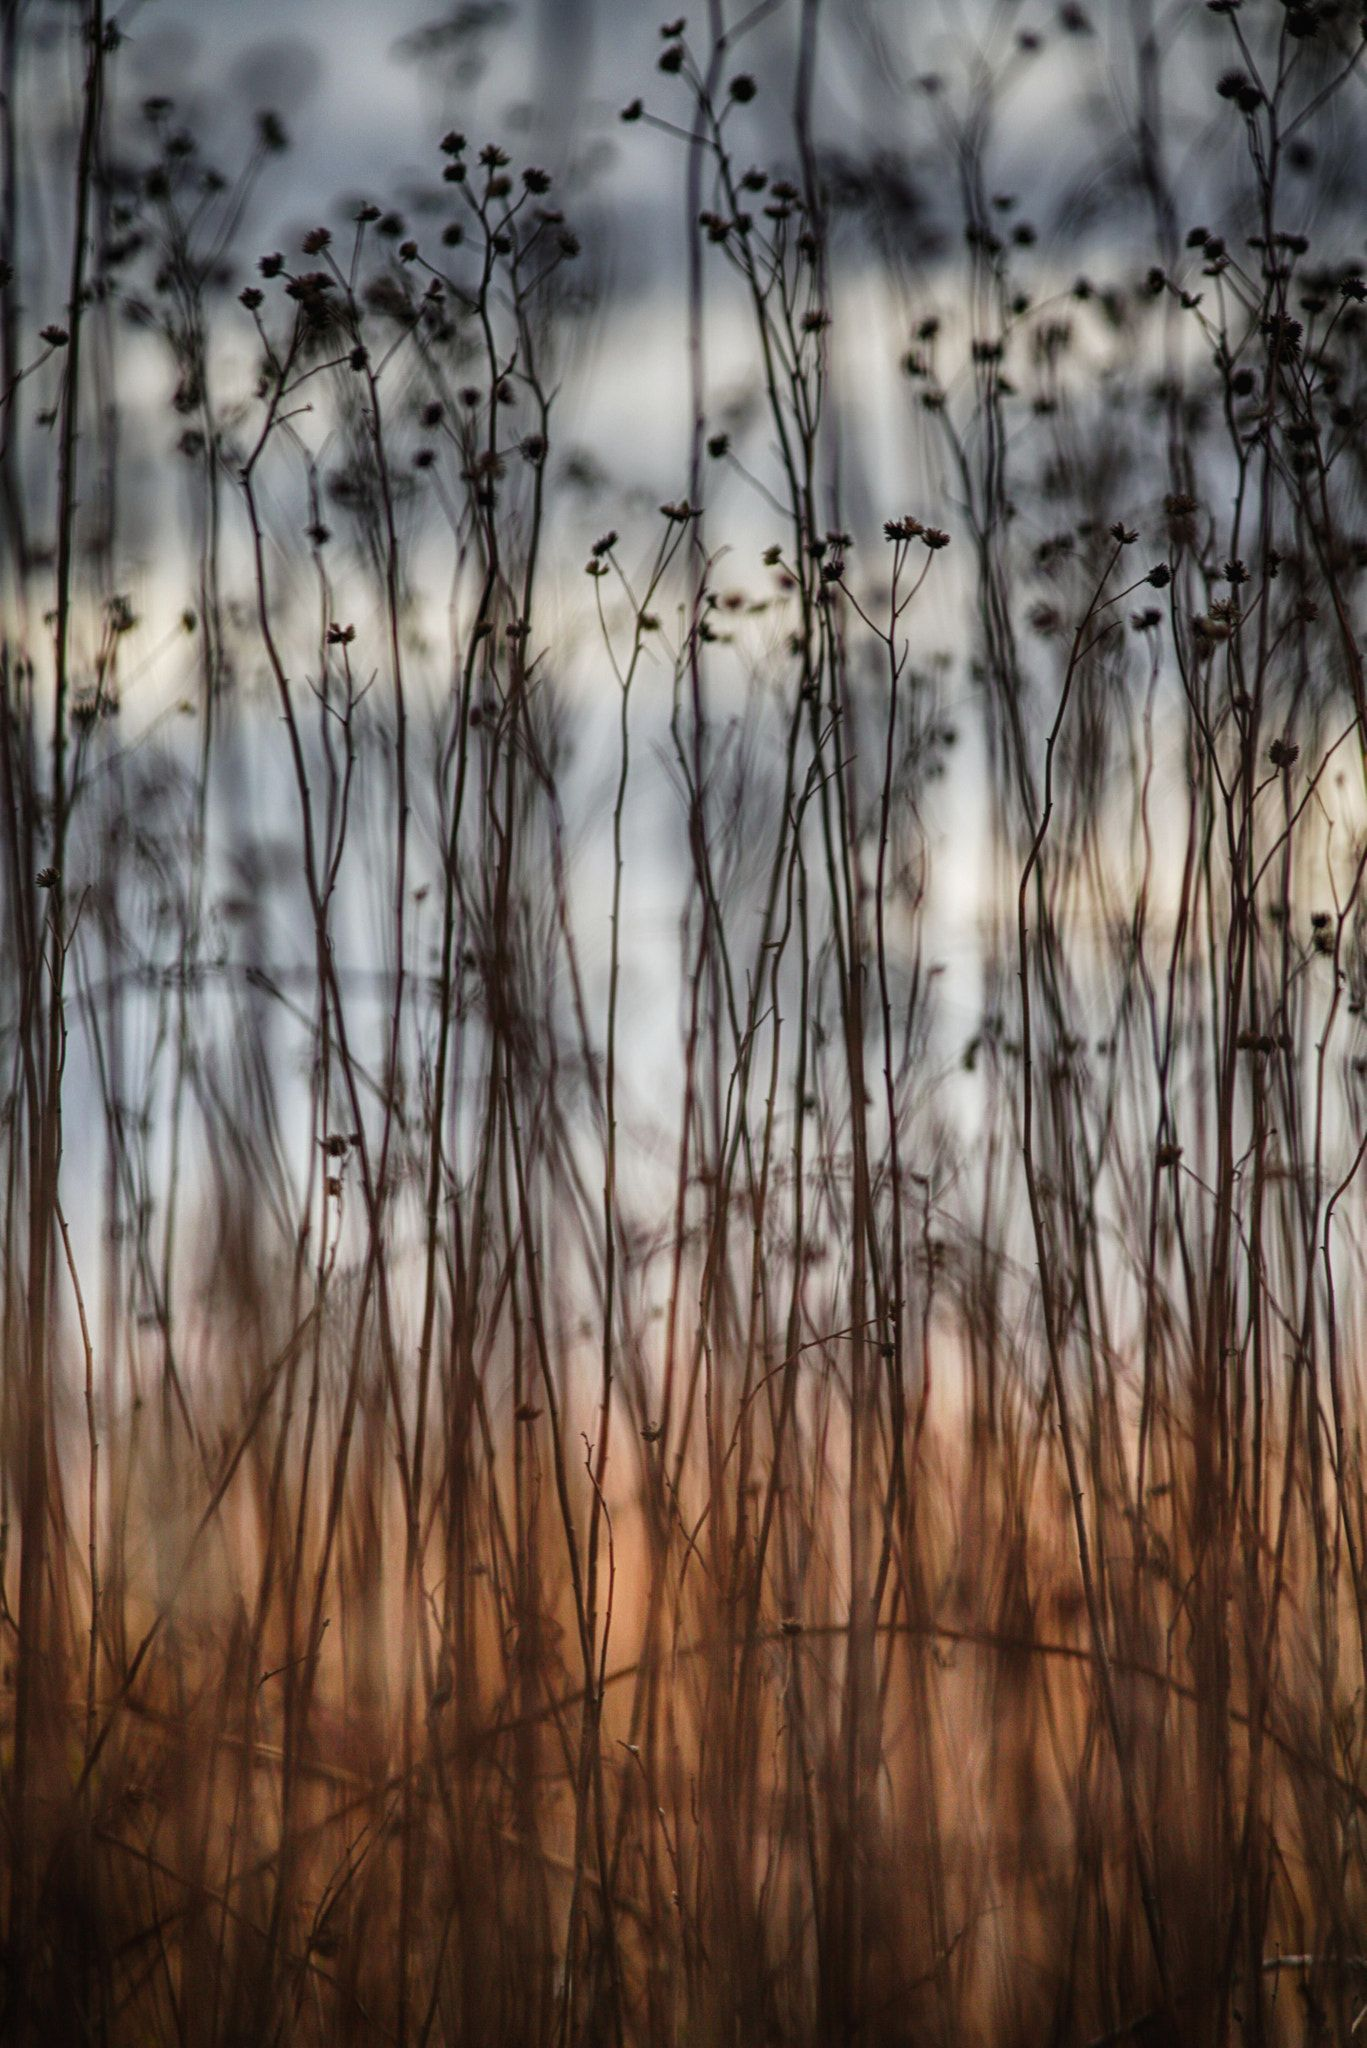 November Twilight >> November Sets In Twilight In Mid November In The Meadow At